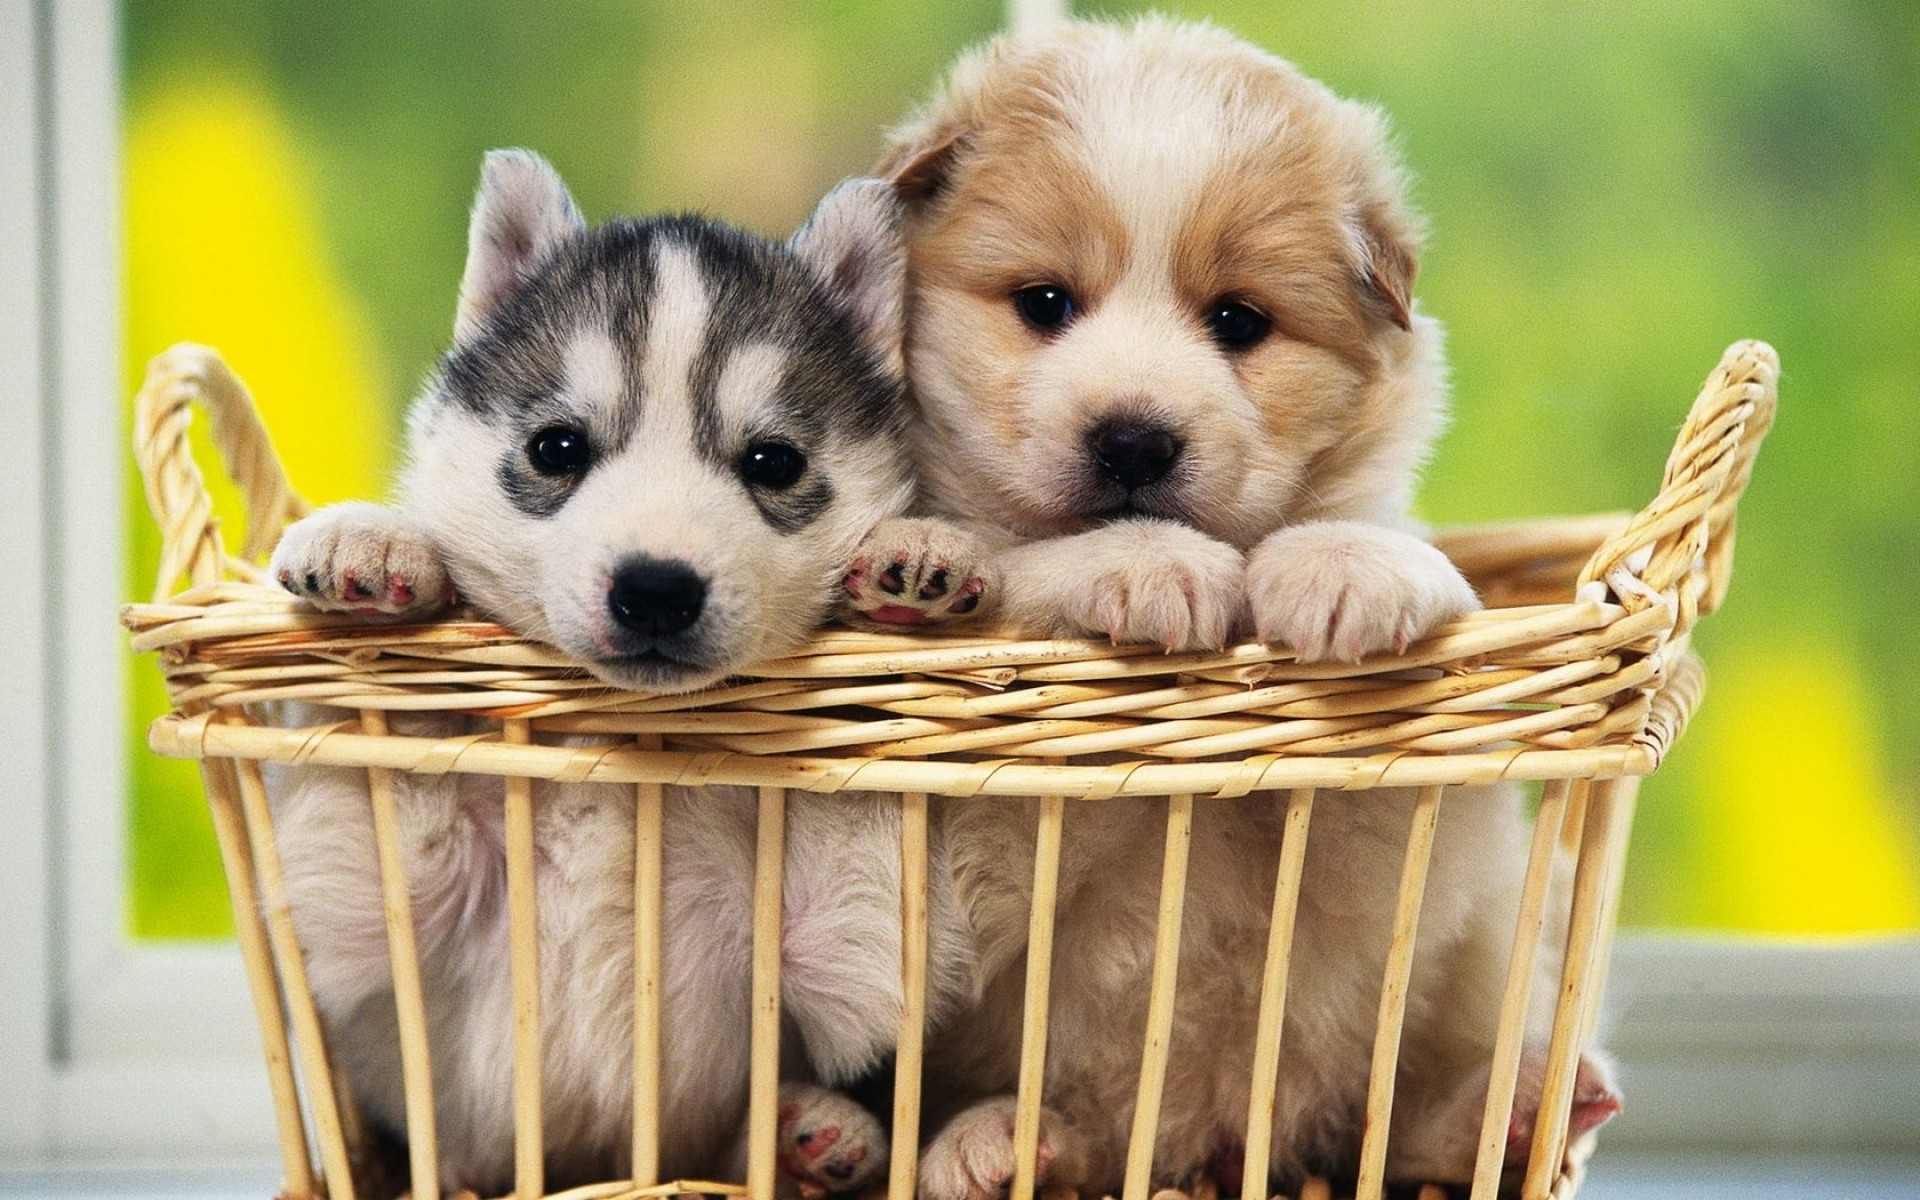 1920x1200 Cute Pair of Puppies Background